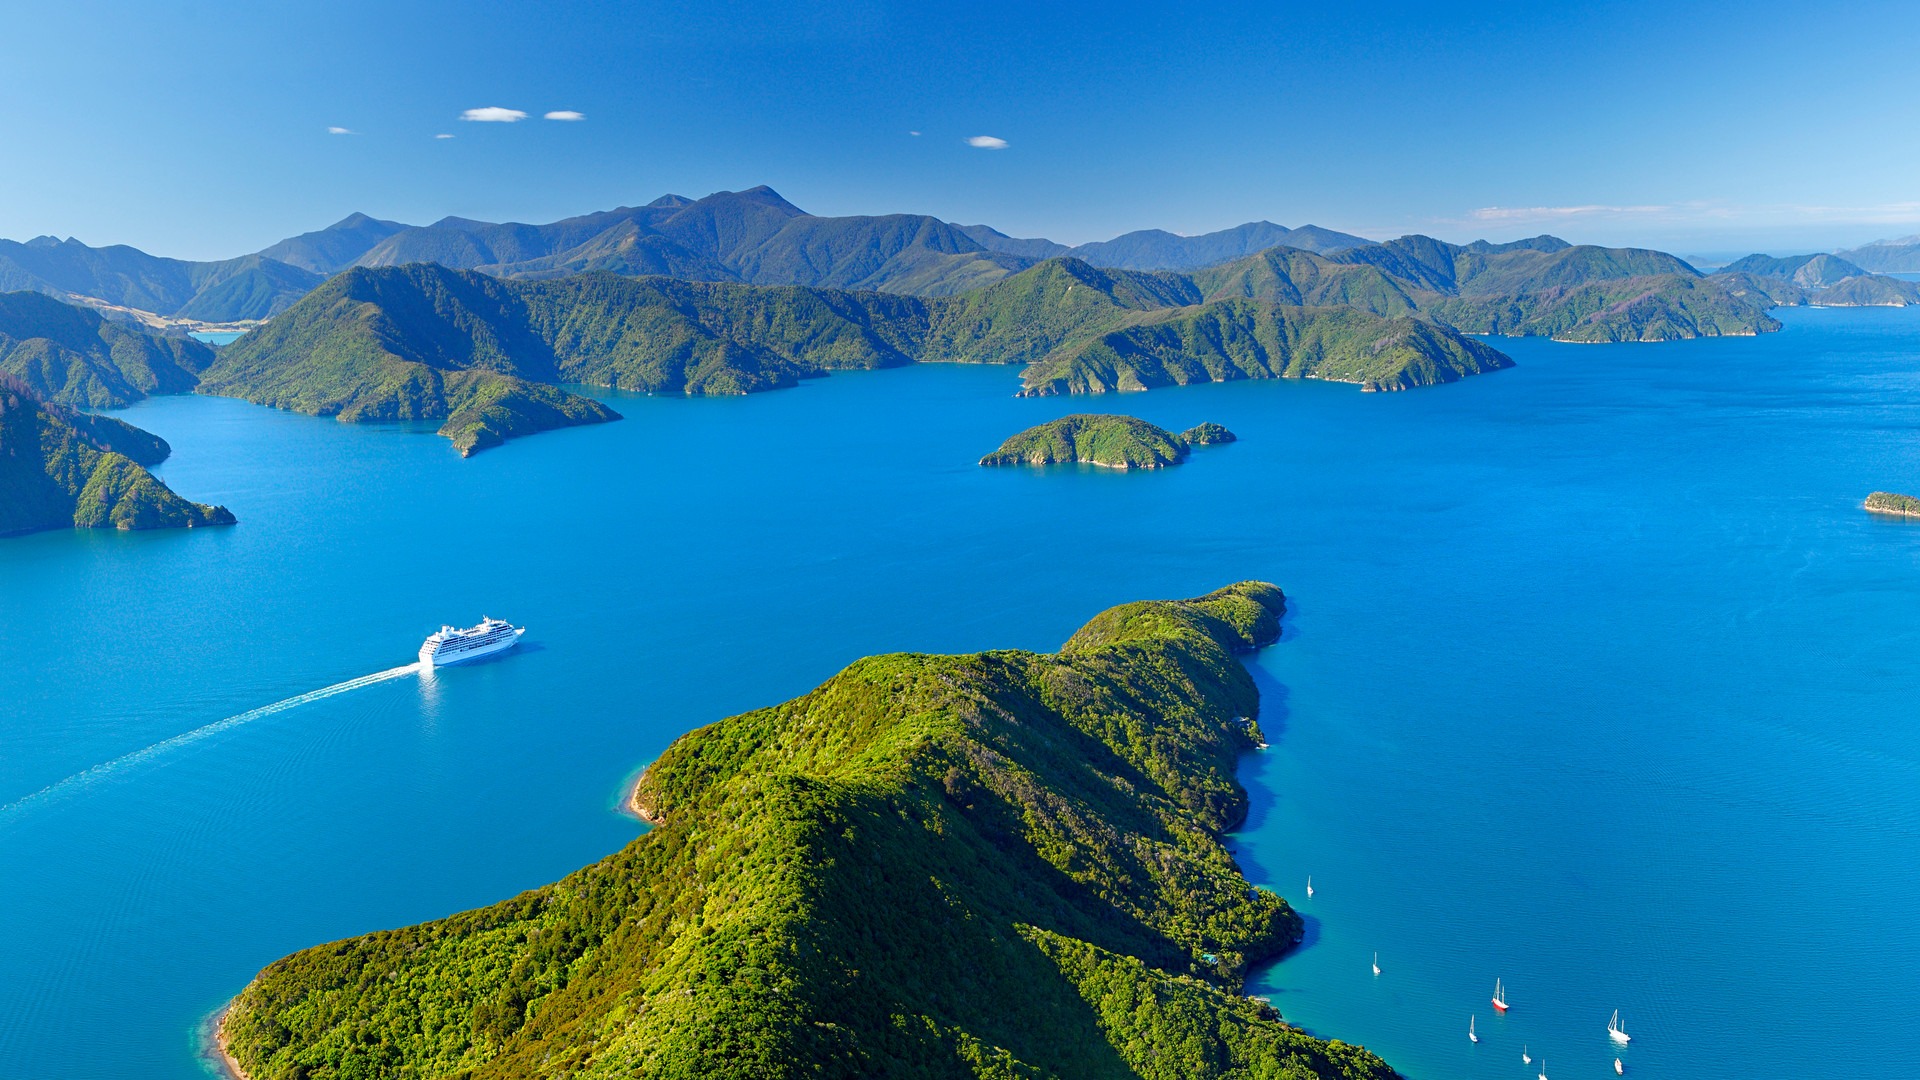 Neuseeland-Marlborough-Sounds-Marlboroug